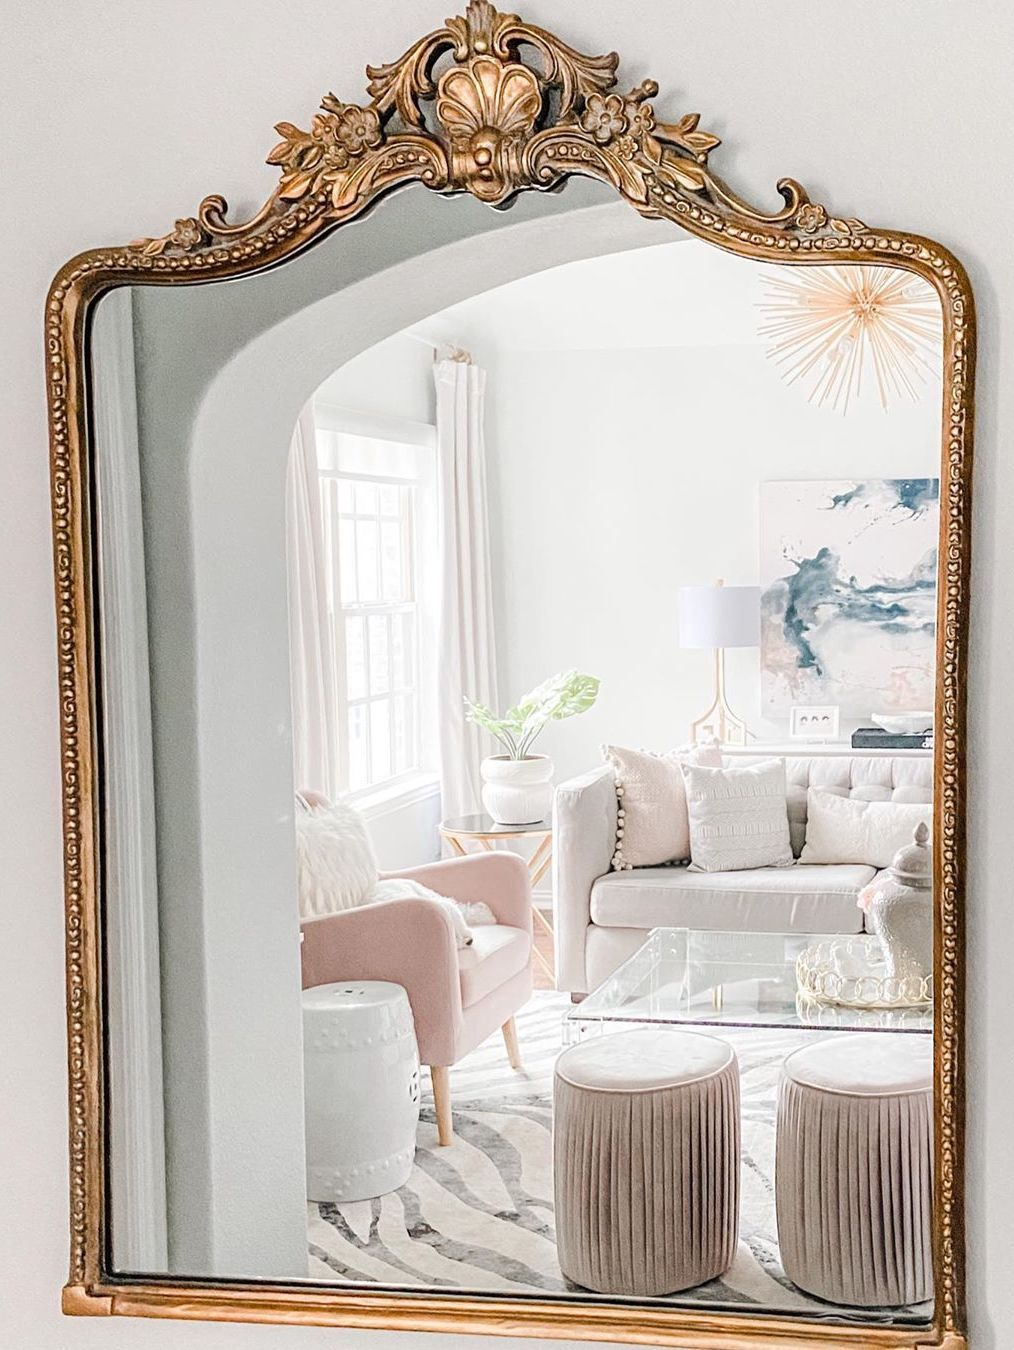 36 Glam Mirrors Sorted By Style That You Must See In 2020 Mirror Wall Living Room Wall Mirror Decor Living Room Fall Living Room Decor